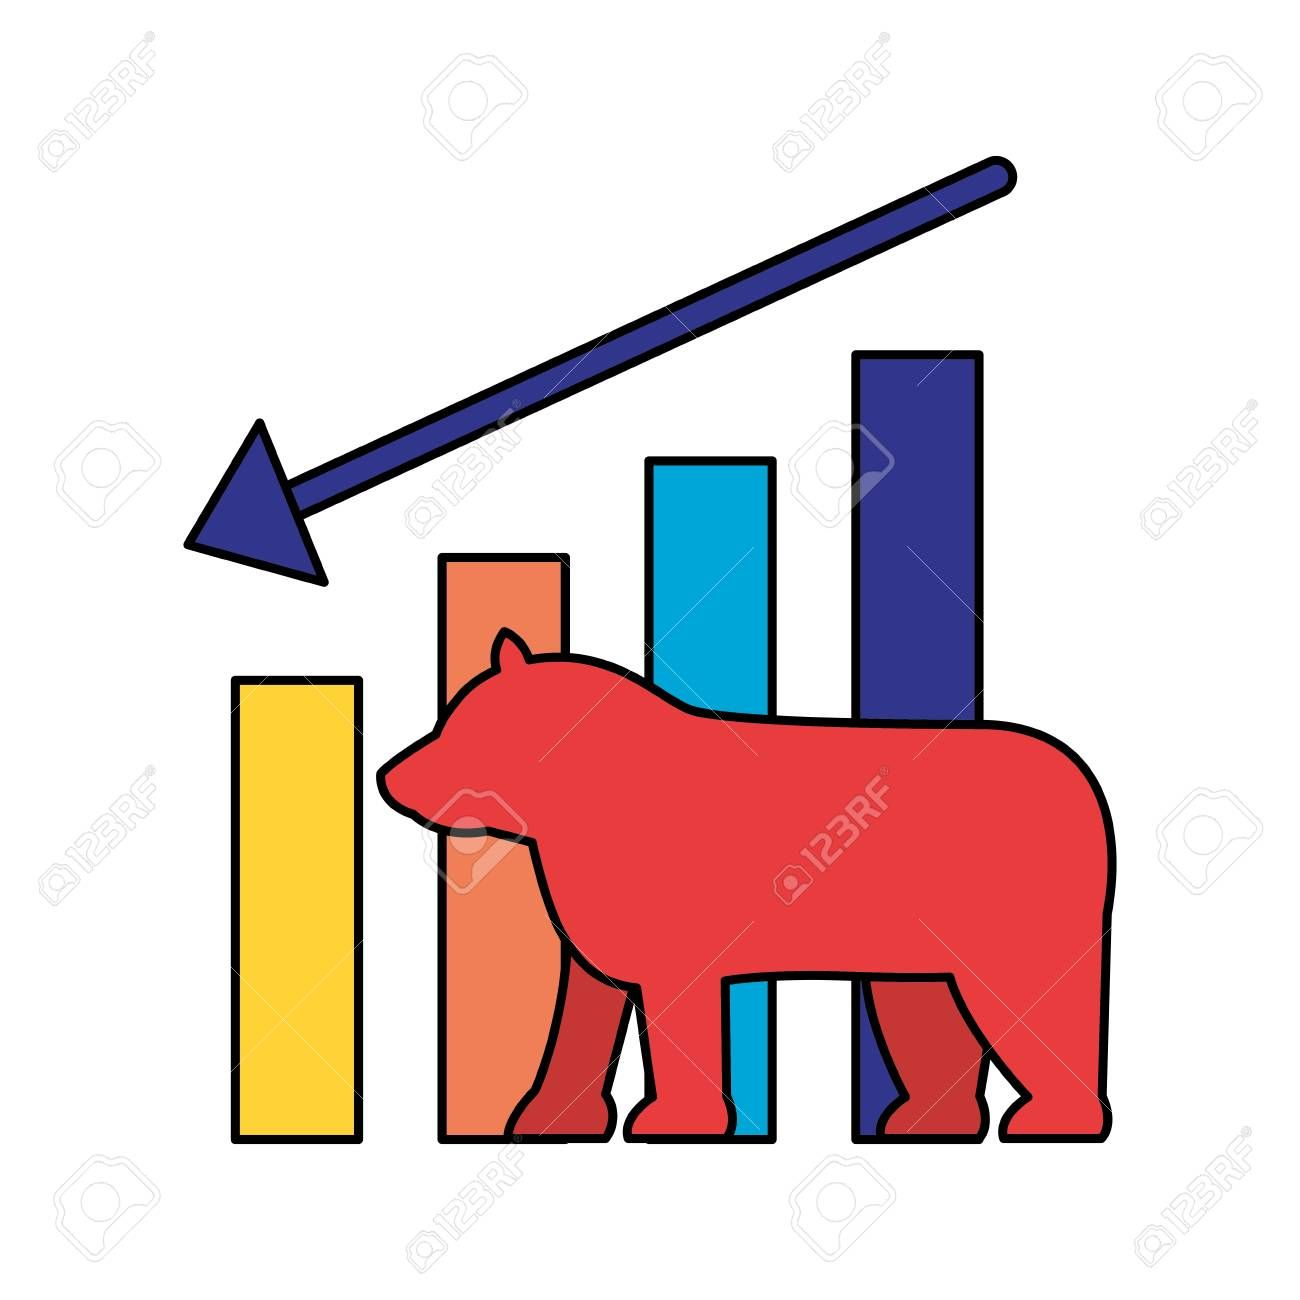 Bear Downtrend Stock Market Symbol Vector Illustration Affiliate Stock Downtrend Bear Market Illustration In 2020 Symbols Vector Illustration Illustration